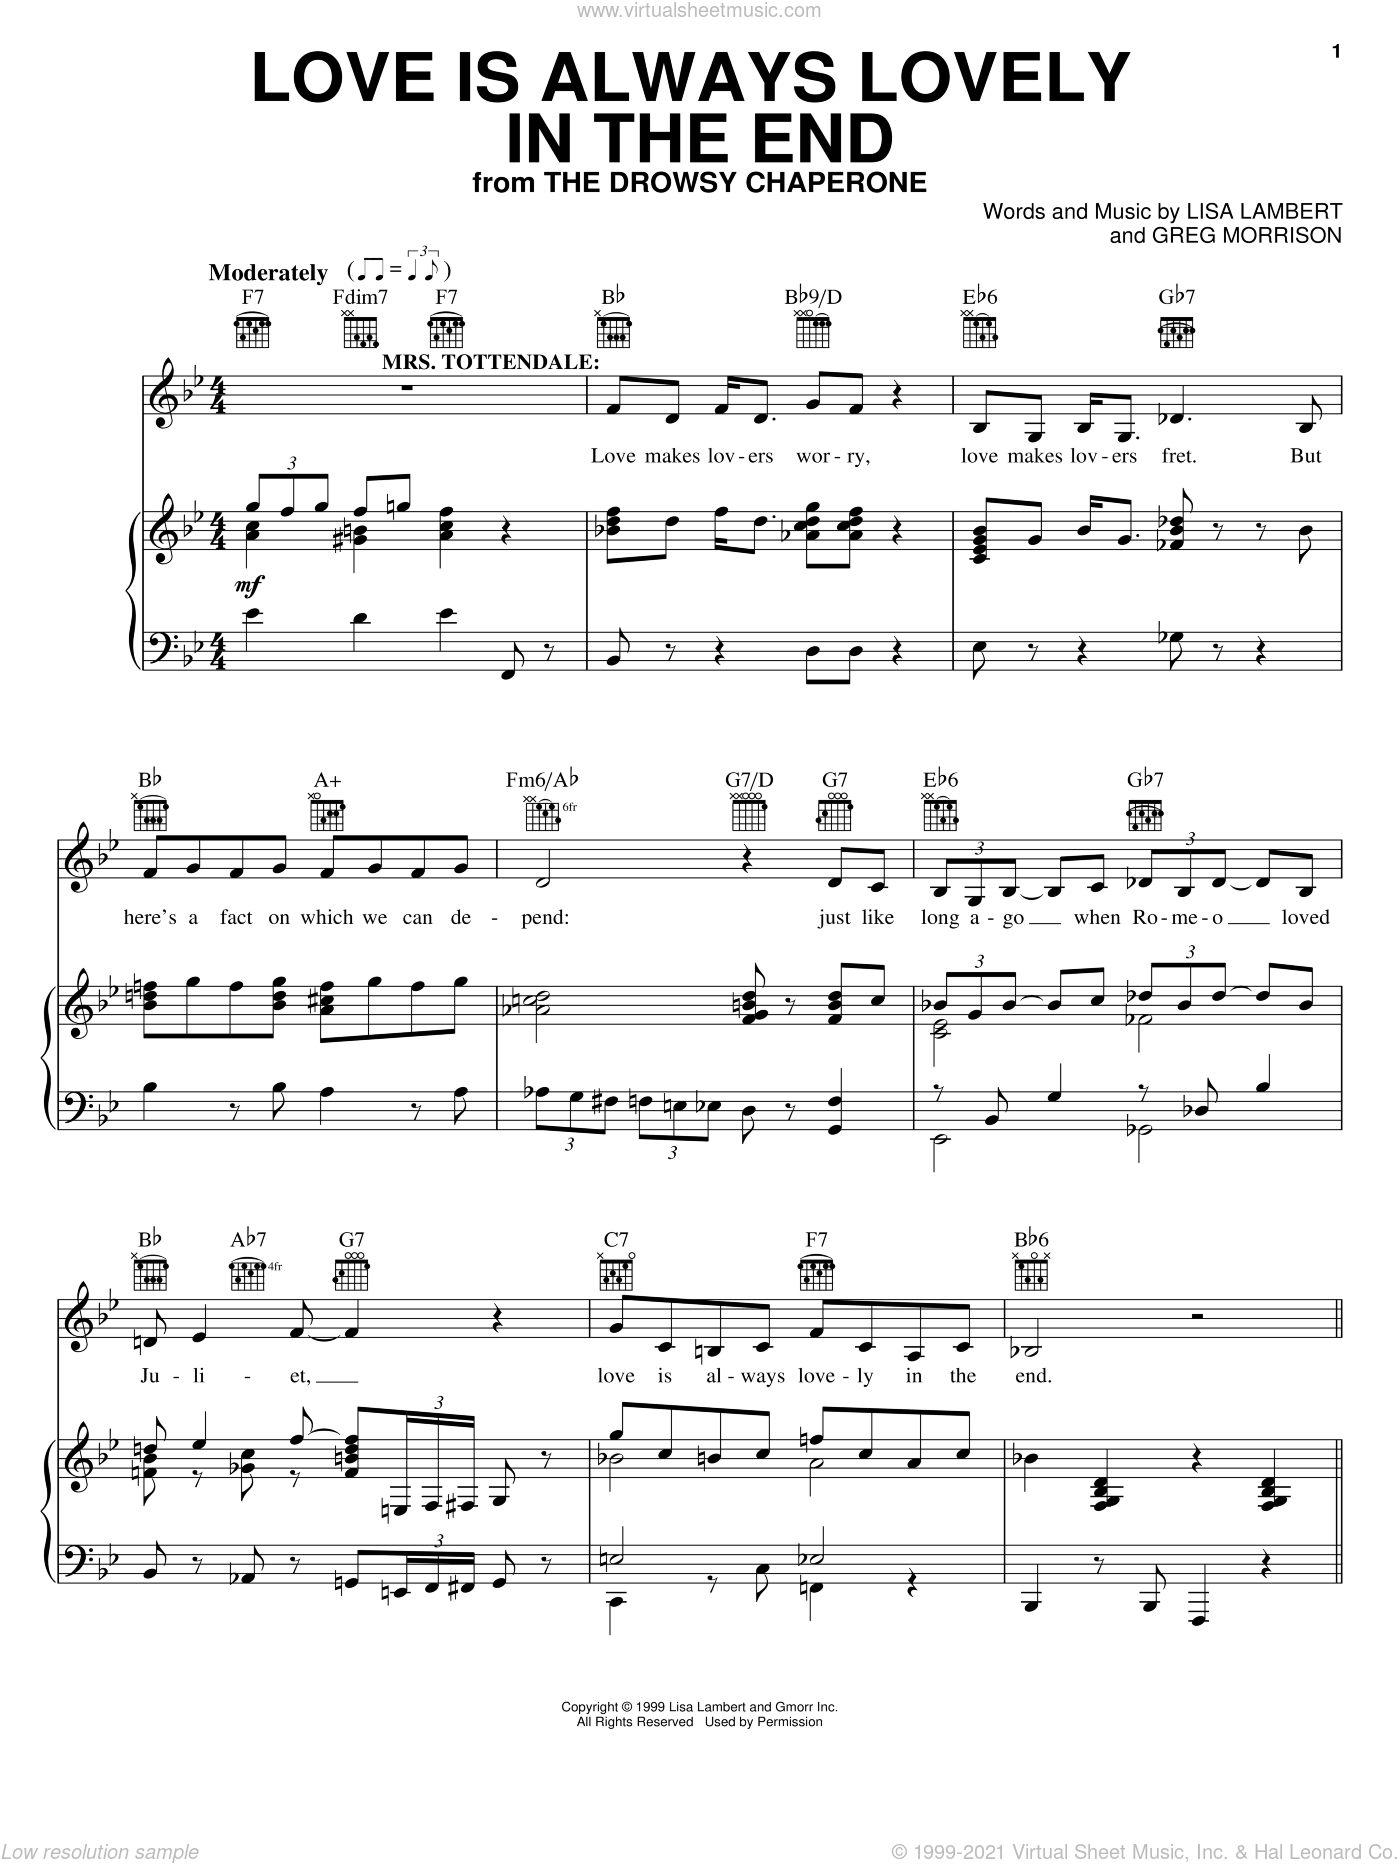 Love Is Always Lovely In The End sheet music for voice, piano or guitar by Greg Morrison and Lisa Lambert. Score Image Preview.